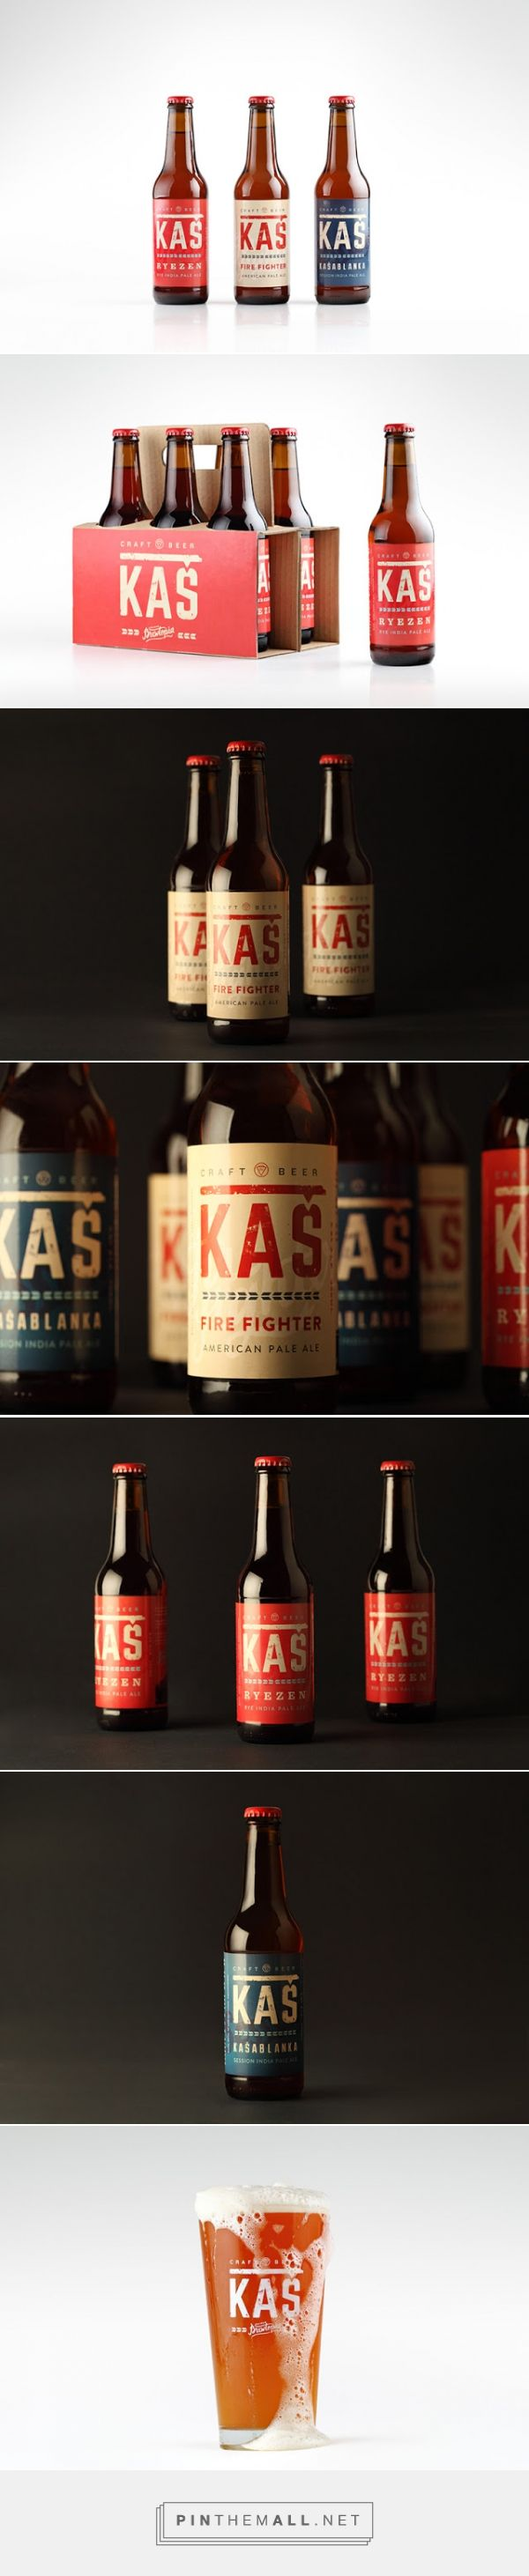 KAS Beer - Packaging of the World - Creative Package Design Gallery - http://www.packagingoftheworld.com/2016/01/kas-beer.html